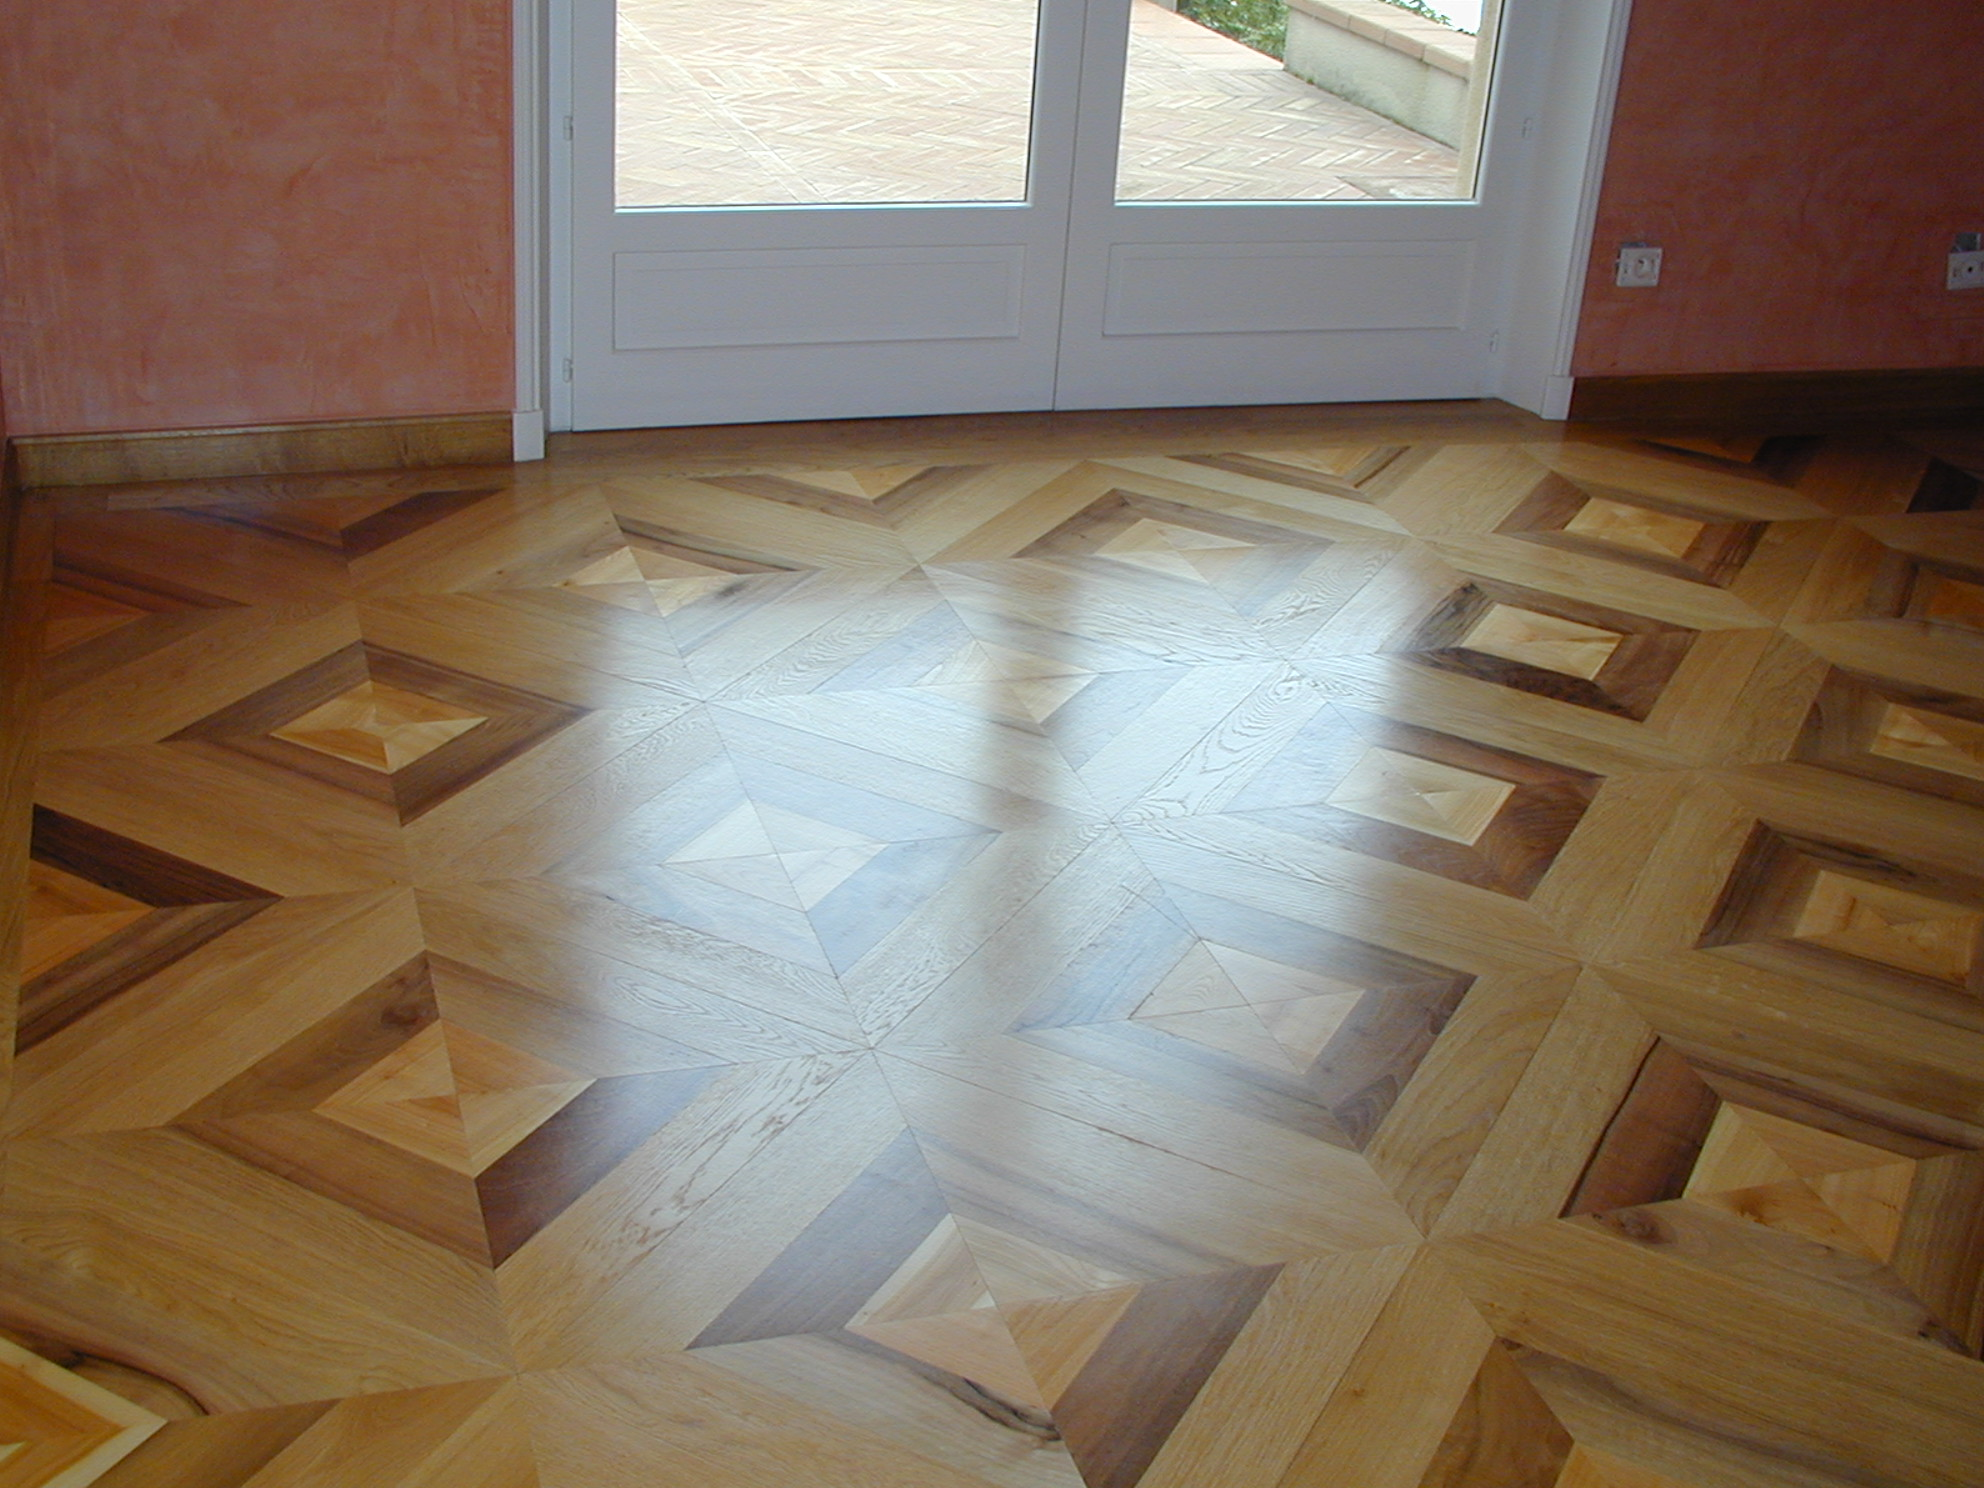 parquet ancien latest parquet de versailles en chne ancien with parquet ancien best parquet. Black Bedroom Furniture Sets. Home Design Ideas